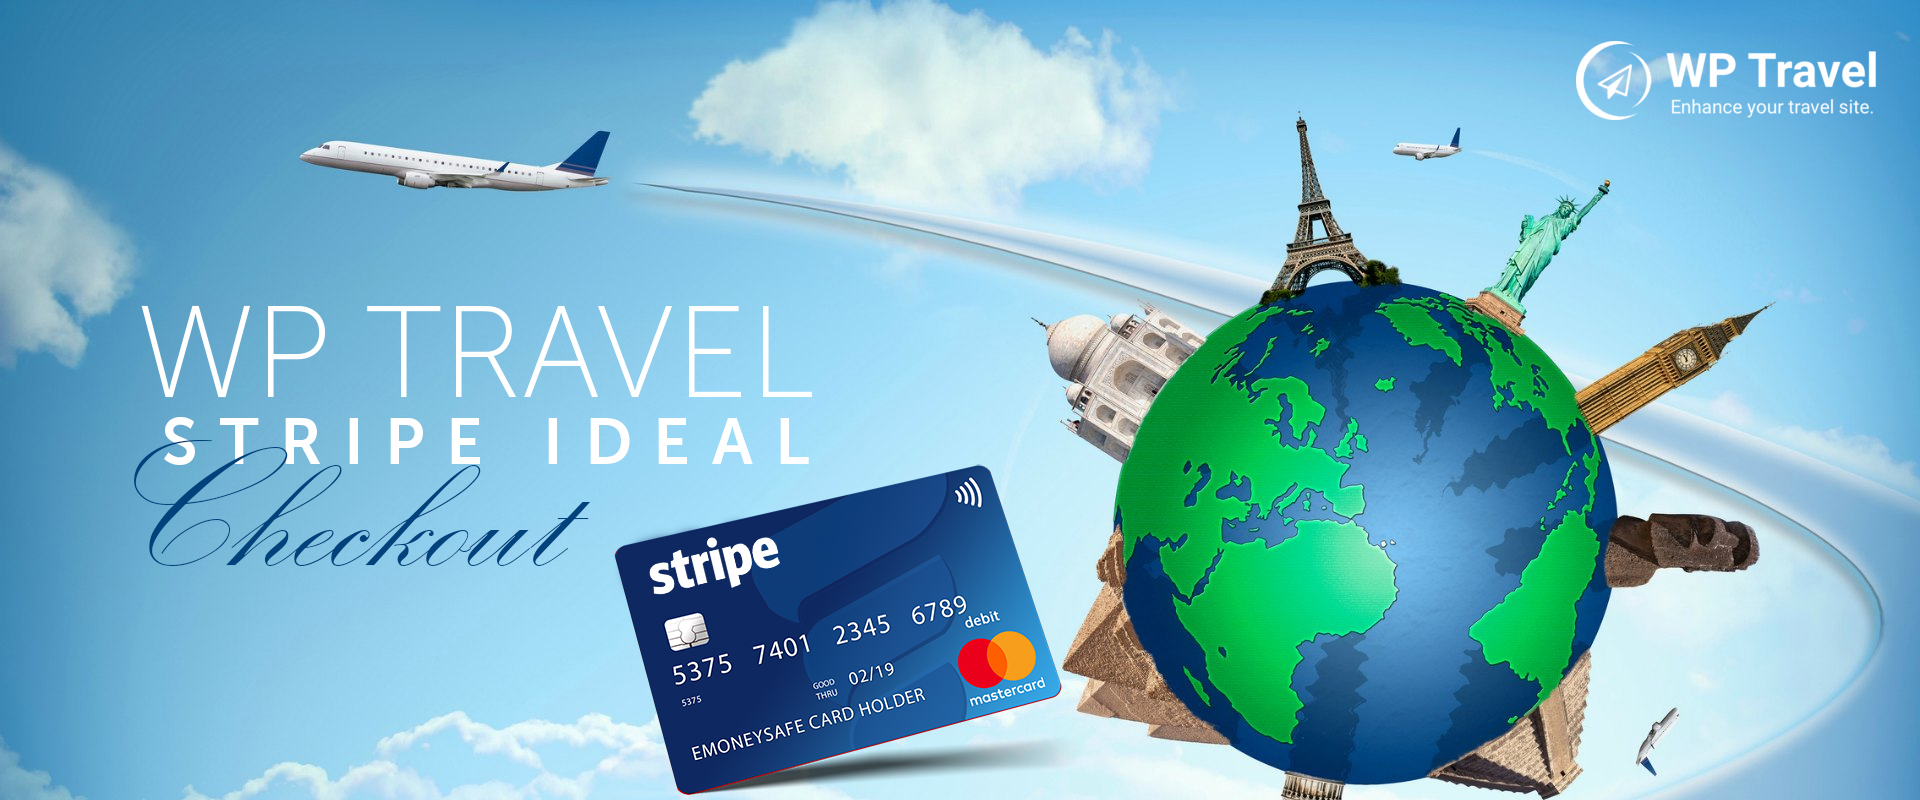 WP Travel Stripe iDEAL Checkout